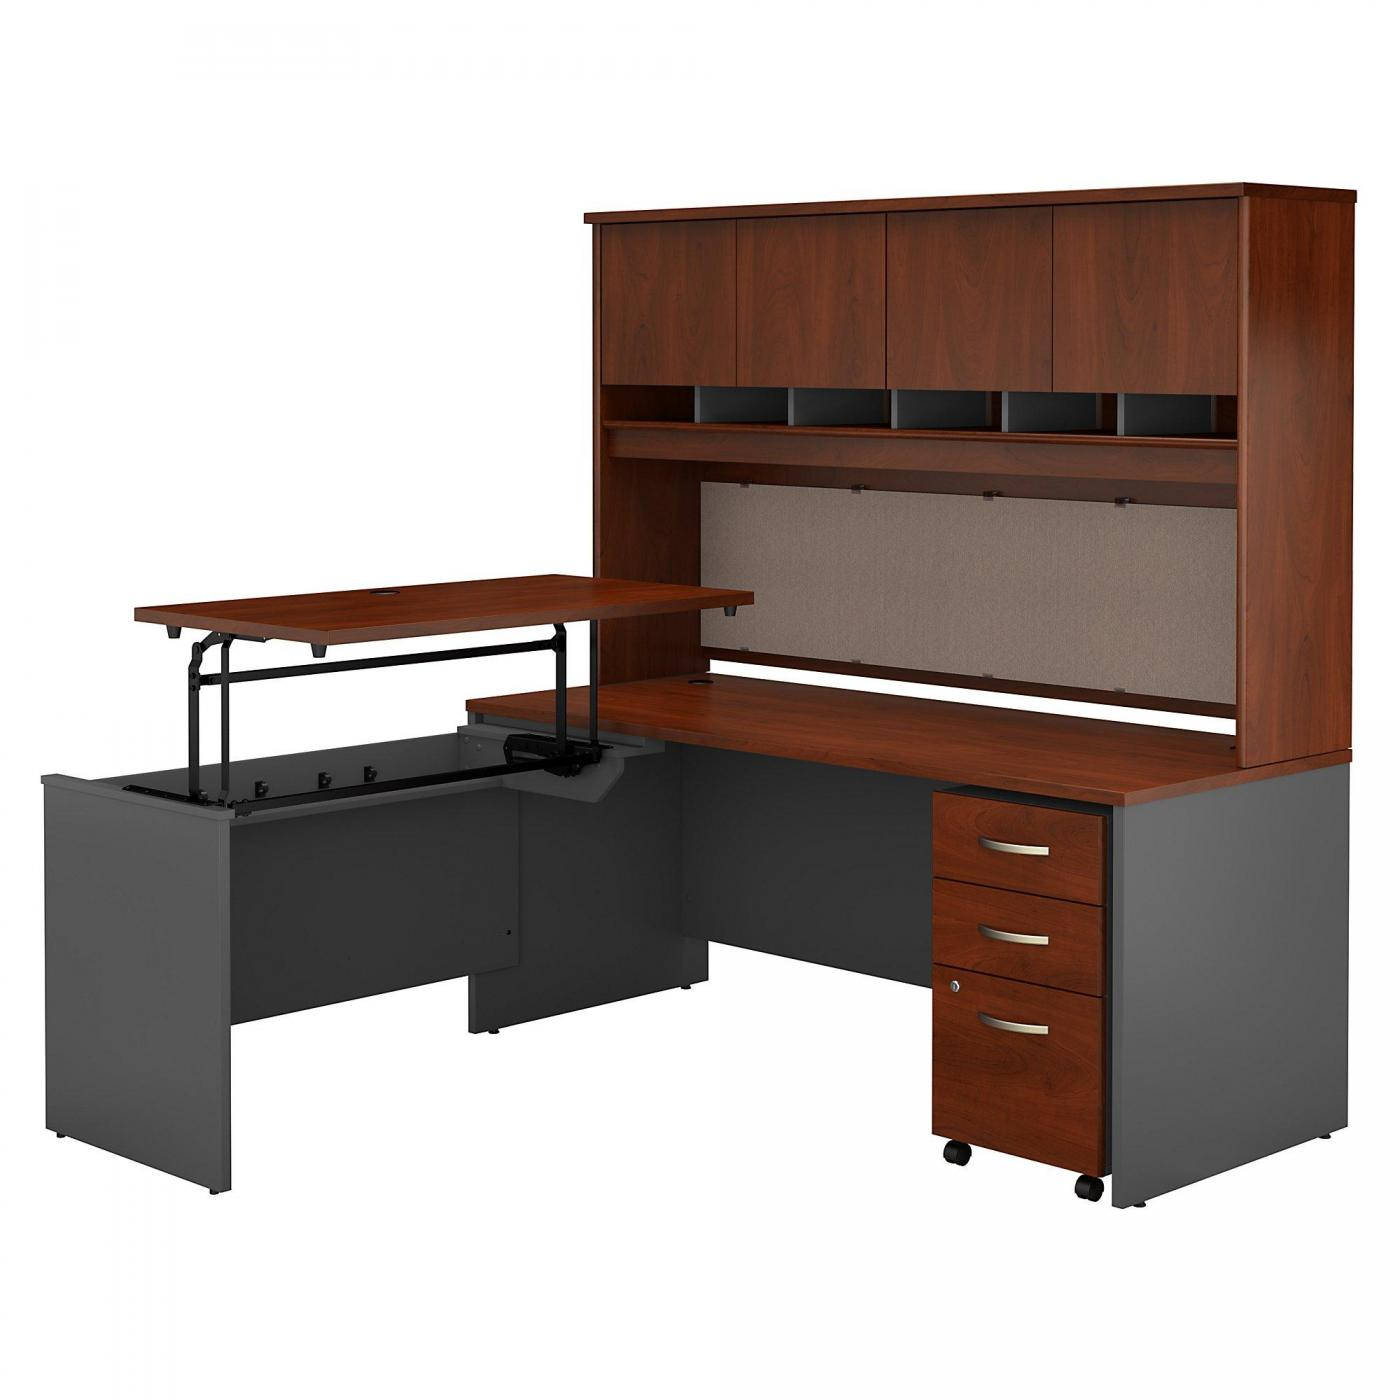 <font color=#c60><b>BUSH BUSINESS FURNITURE SERIES C 72W X 30D 3 POSITION SIT TO STAND L SHAPED DESK WITH HUTCH AND MOBILE FILE CABINET. FREE SHIPPING. VIDEO:</font></b>